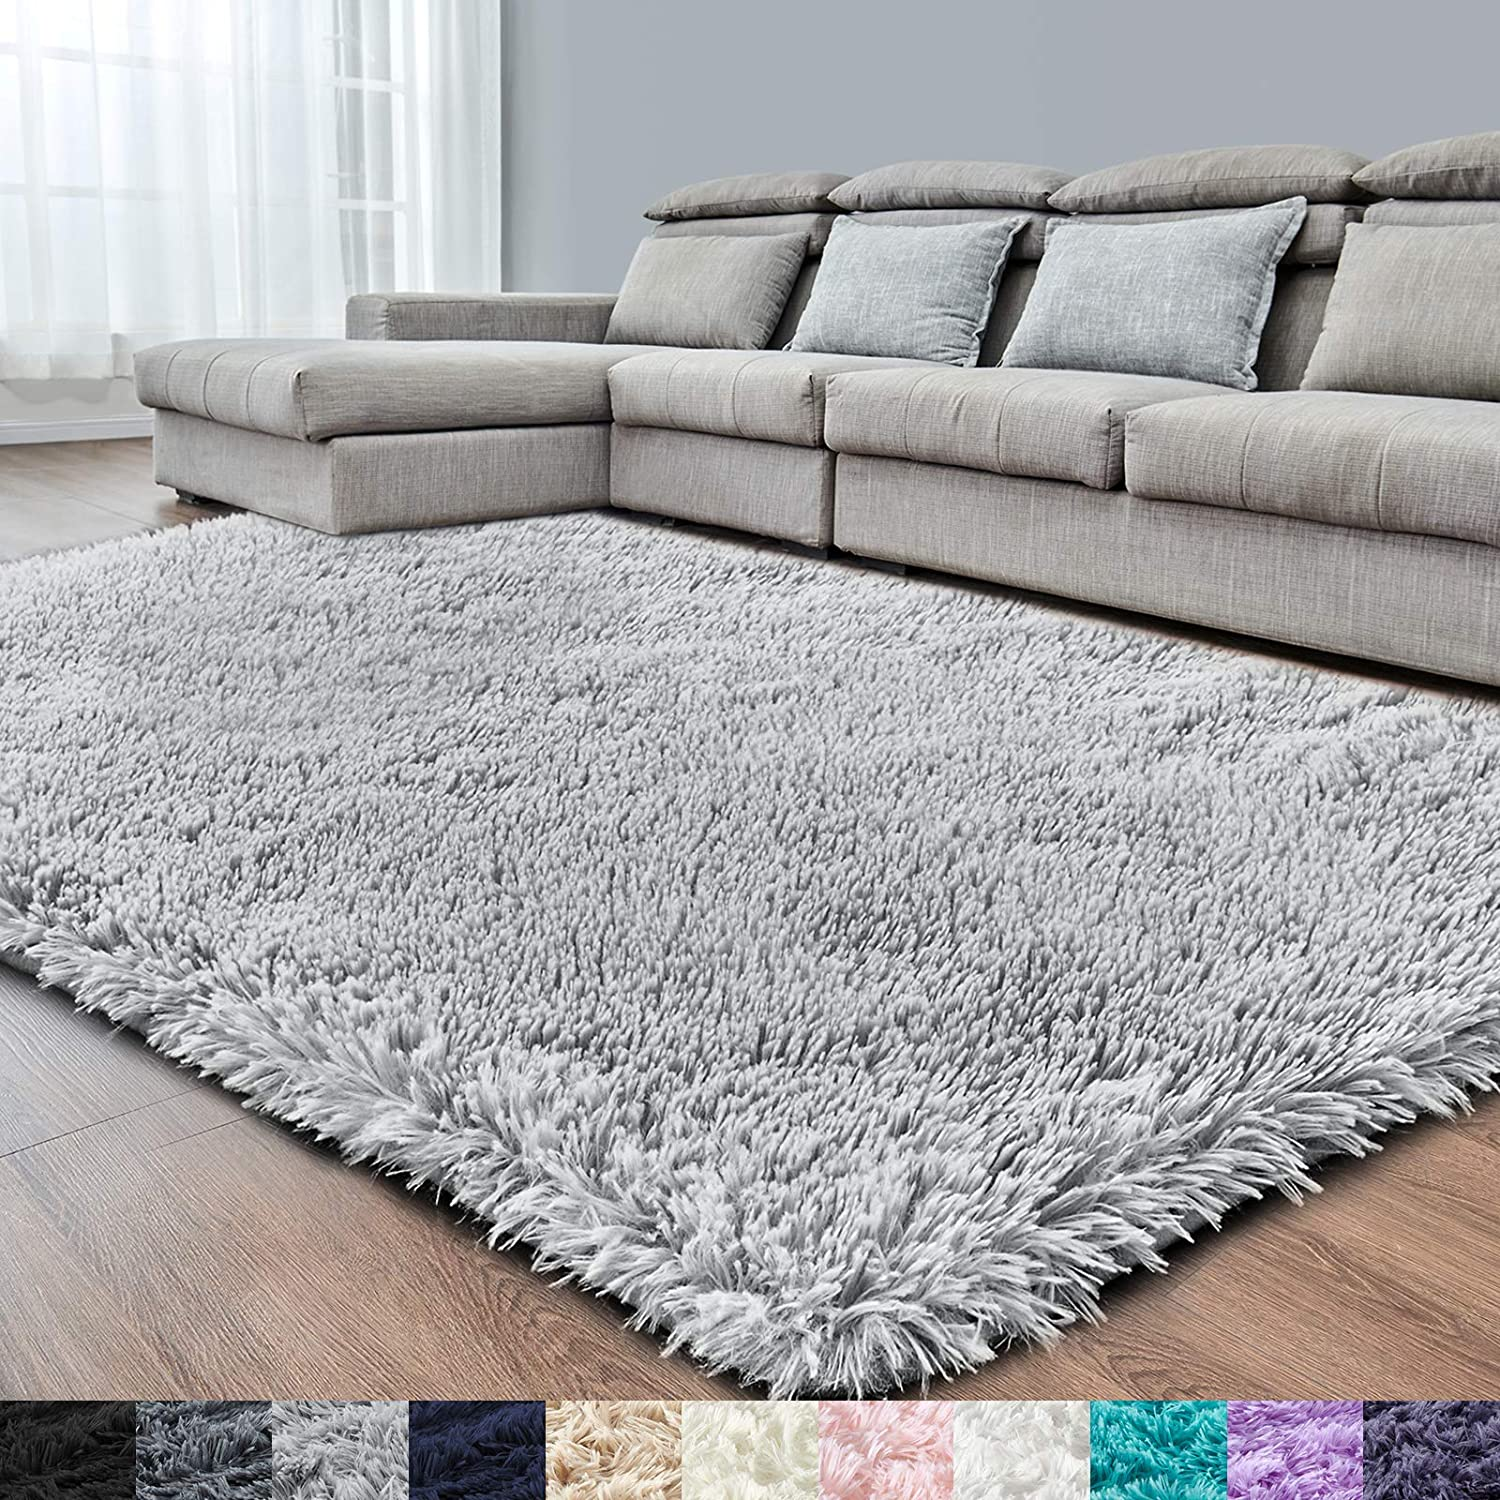 Light Grey Super Soft Area Rug for Bedroom,4x6.6,Fluffy Rugs for Living Room,Shag Carpet for Girls Boys Room,Furry Rug for Baby Kids Room,Fuzzy Rug for Dorm Nursery Room,Anti-Slip Rug,Bedside Rug